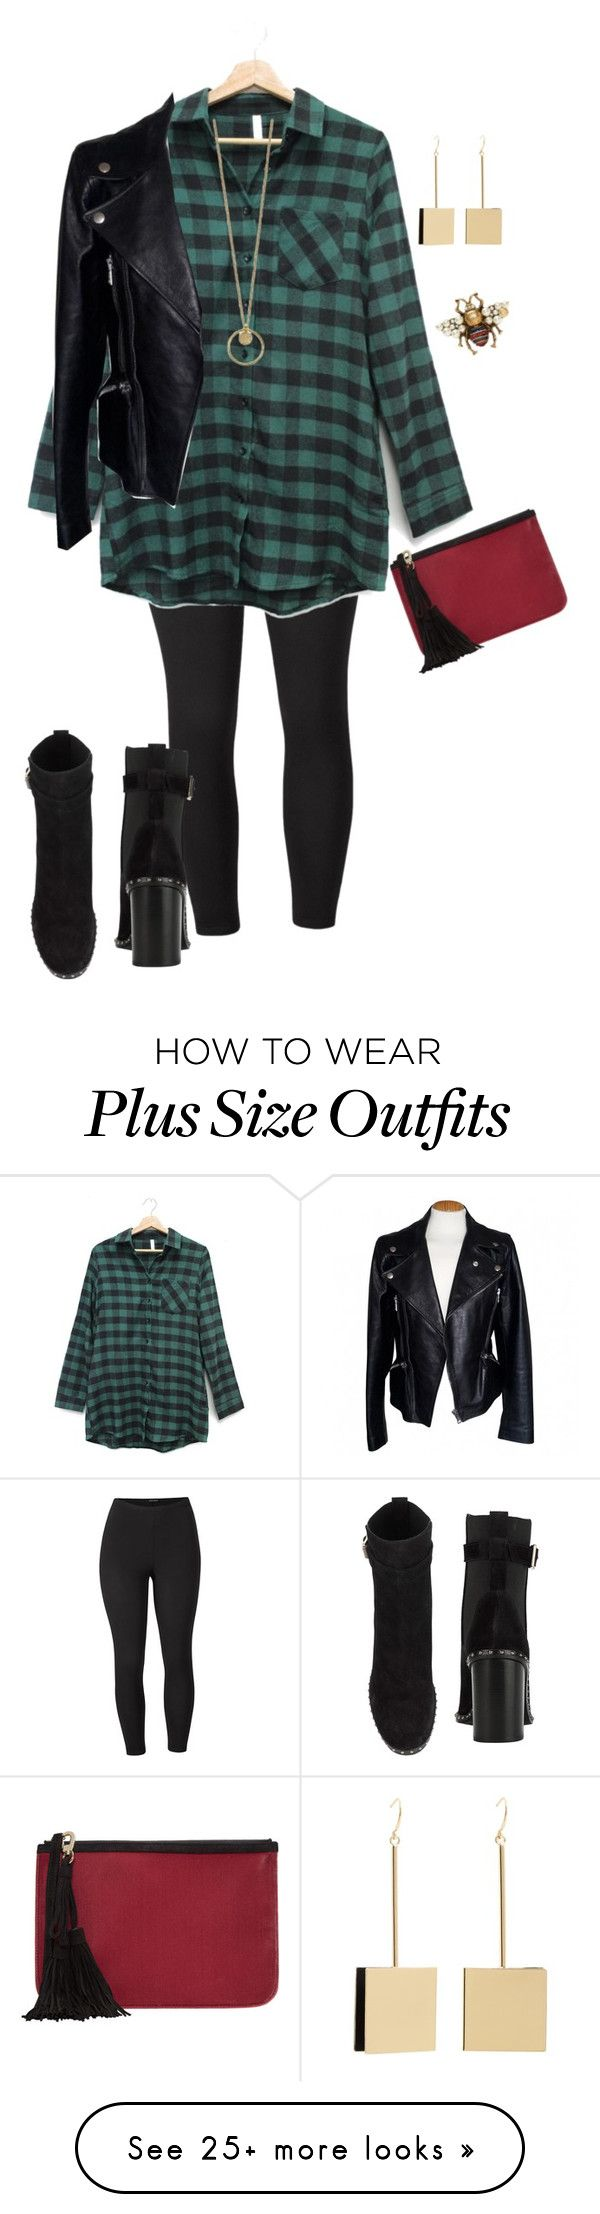 """Plus Date Night"" by xtrak on Polyvore featuring Venus, MANGO, Gucci, Pierre Hardy, Alexander McQueen, rag & bone and plus size clothing"